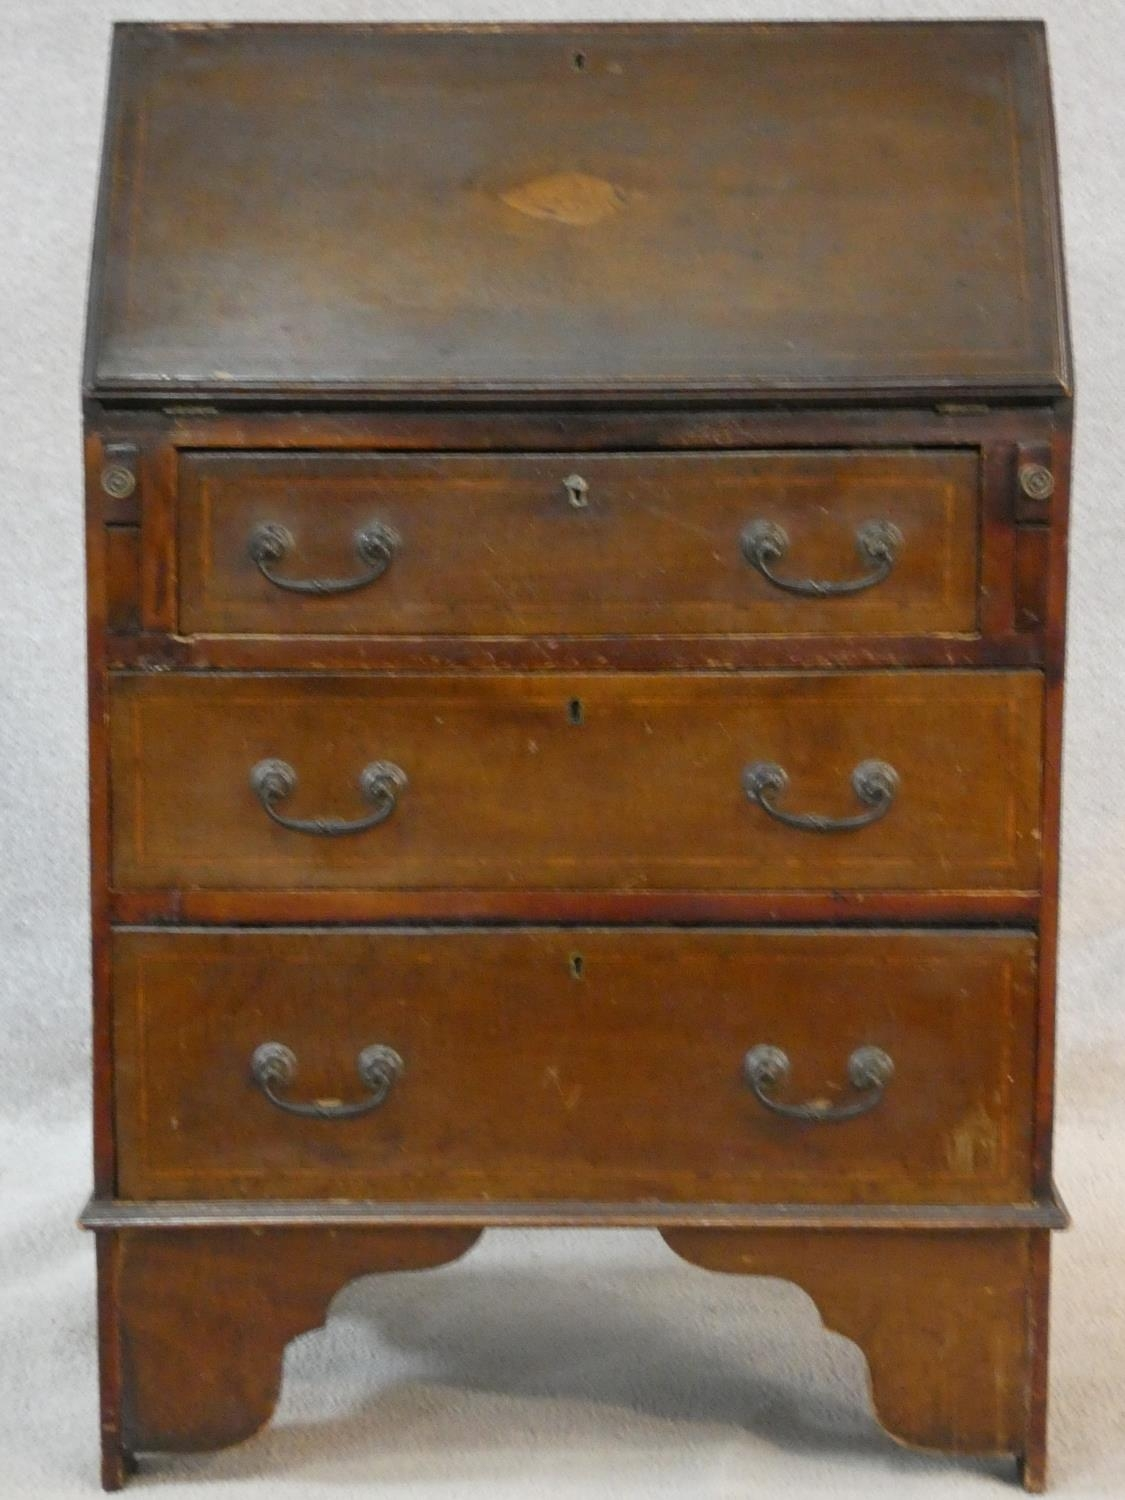 An Edwardian mahogany bureau with satinwood stringing and shell inlay to the frieze. H.95 W.61 D.